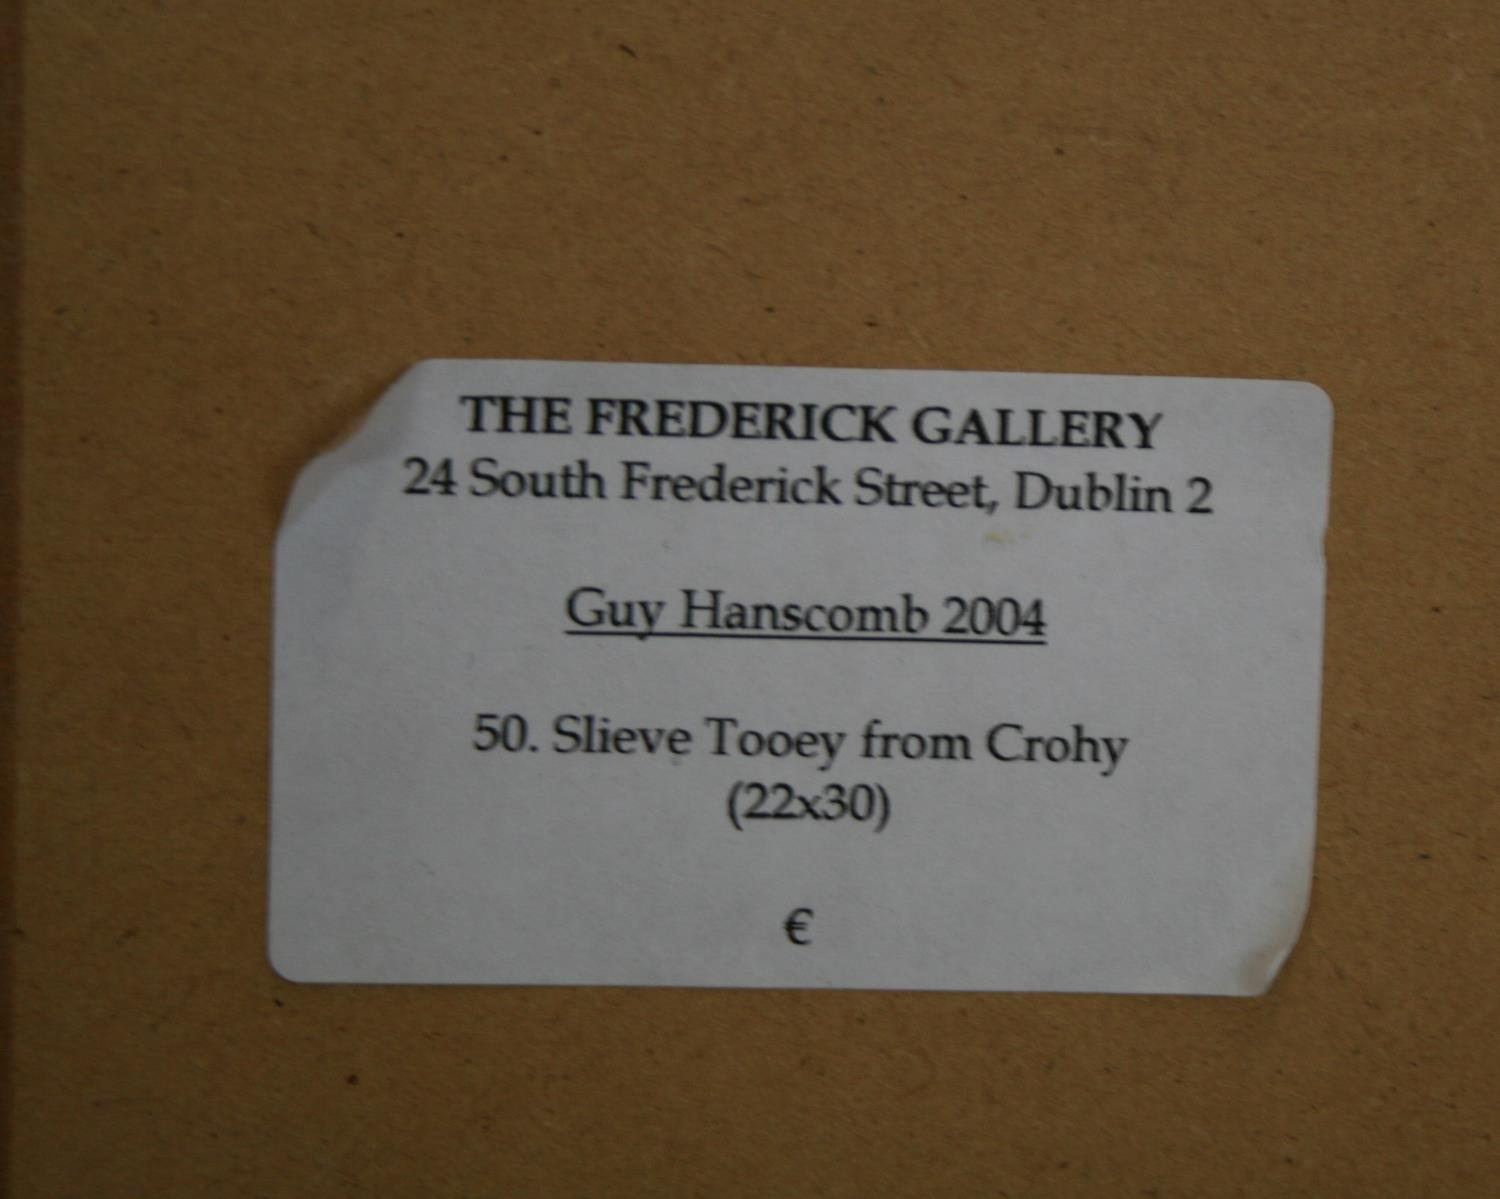 Guy Hanscomb 2004 oil on canvas - Slieve Tooey from Crohy. 78W x 57H - Image 3 of 3